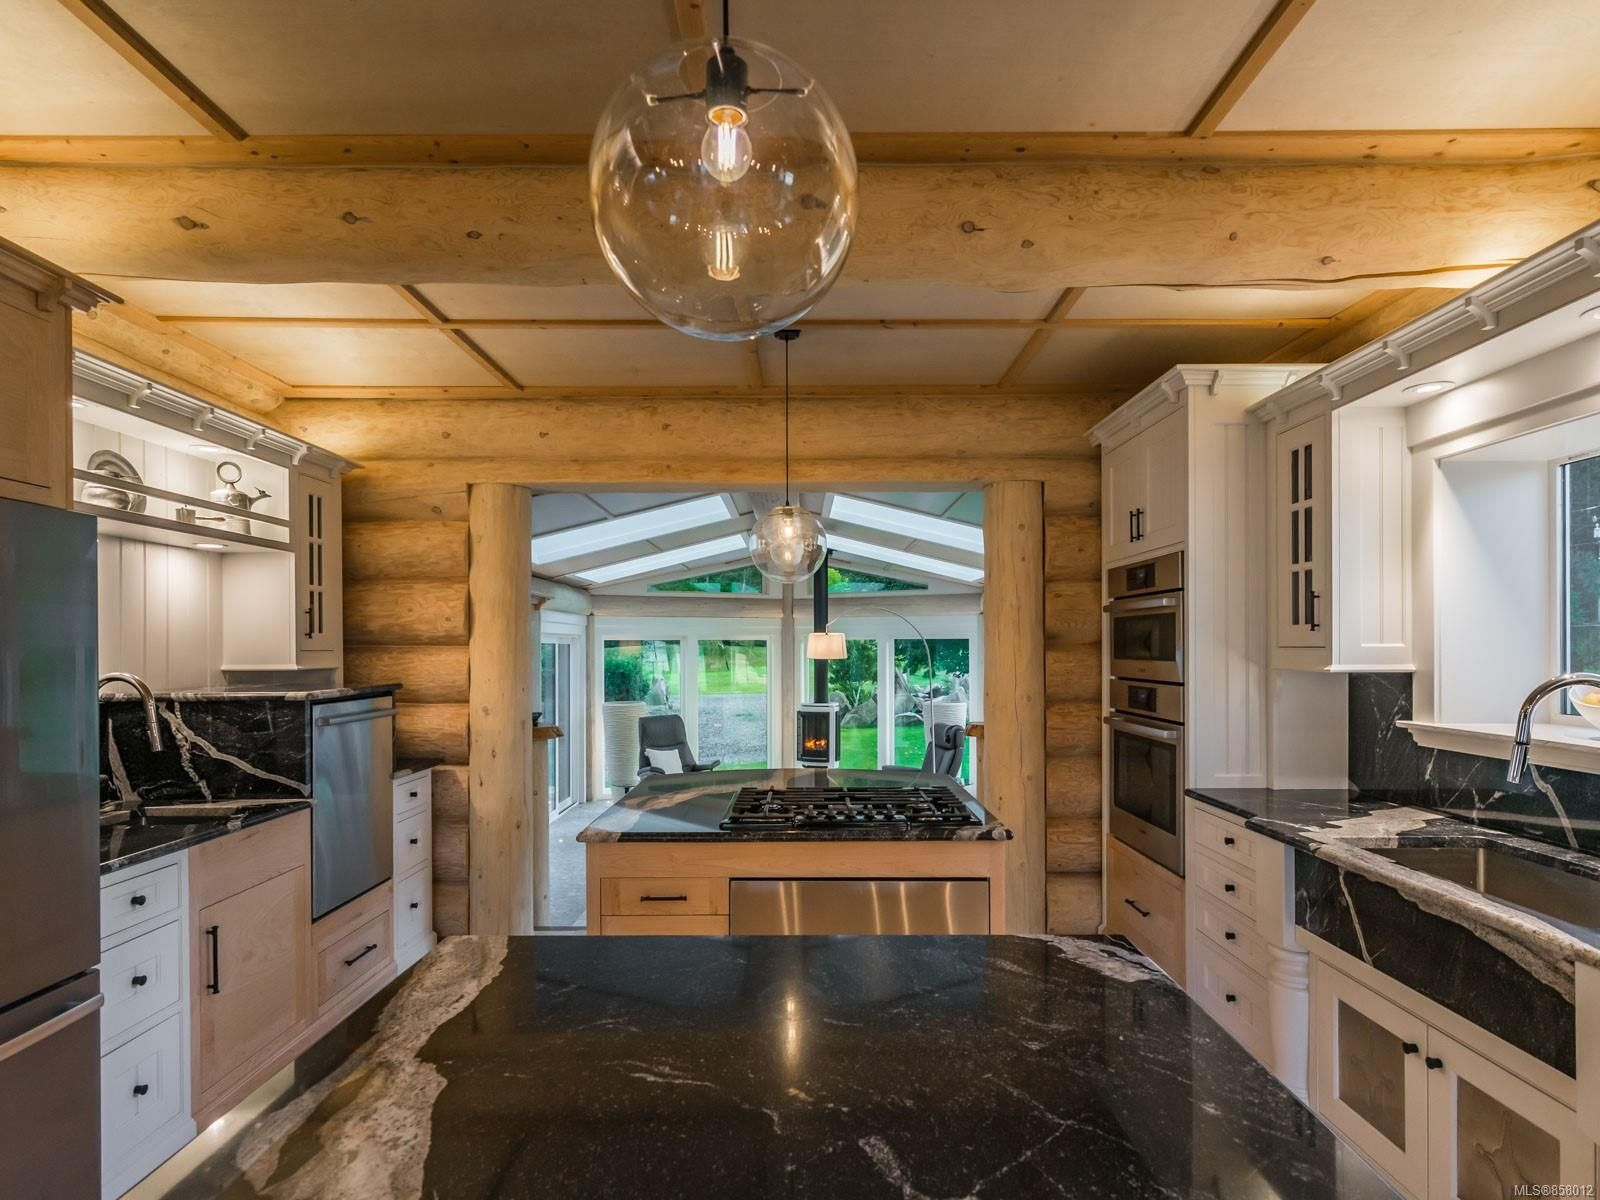 Photo 21: Photos: 6030 MINE Rd in : NI Port McNeill House for sale (North Island)  : MLS®# 858012